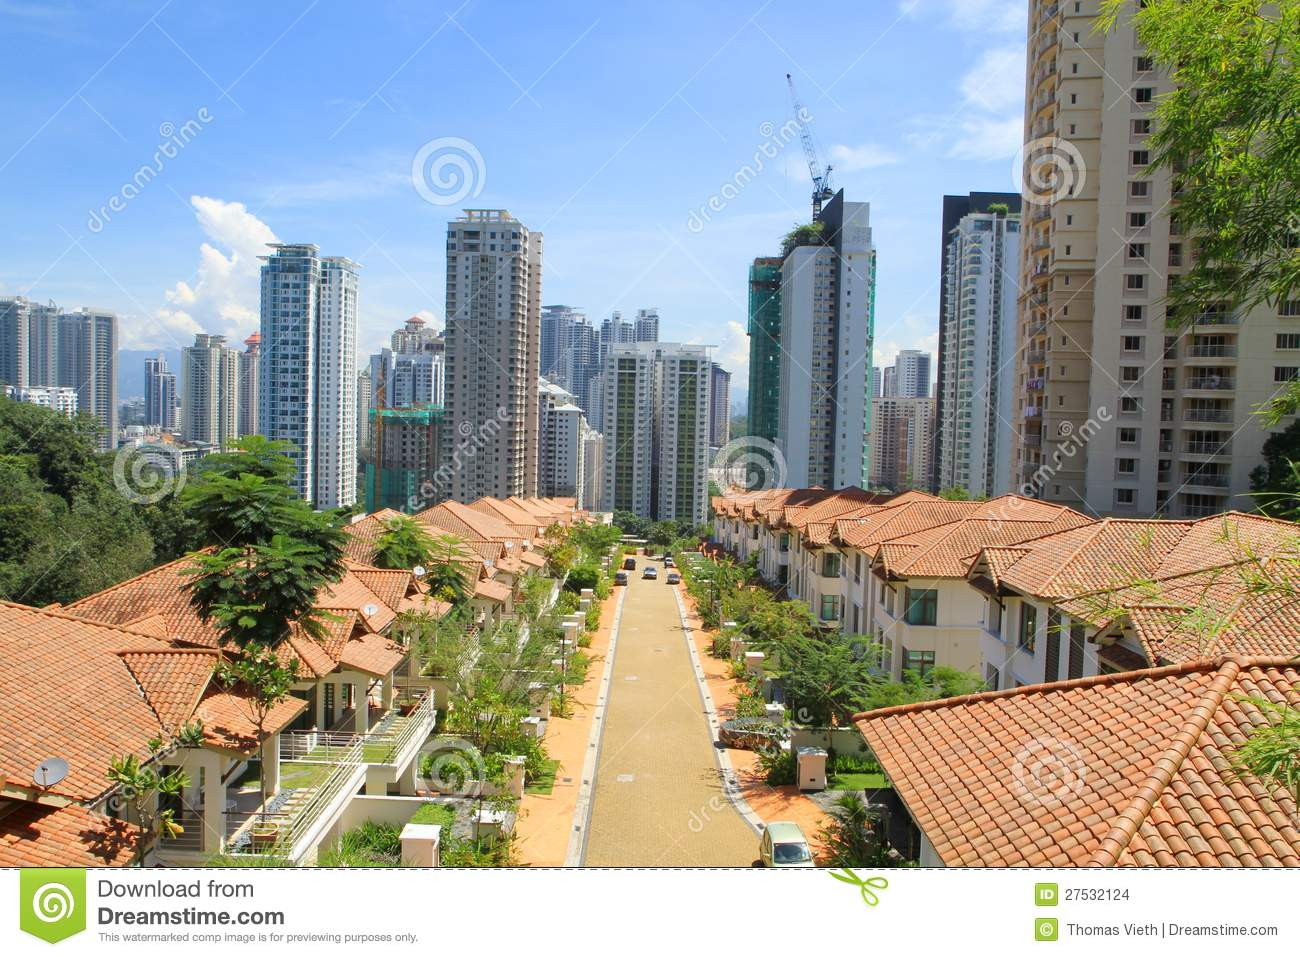 Malaysia kl residential area and high rise condos stock for Gardening tools kuala lumpur